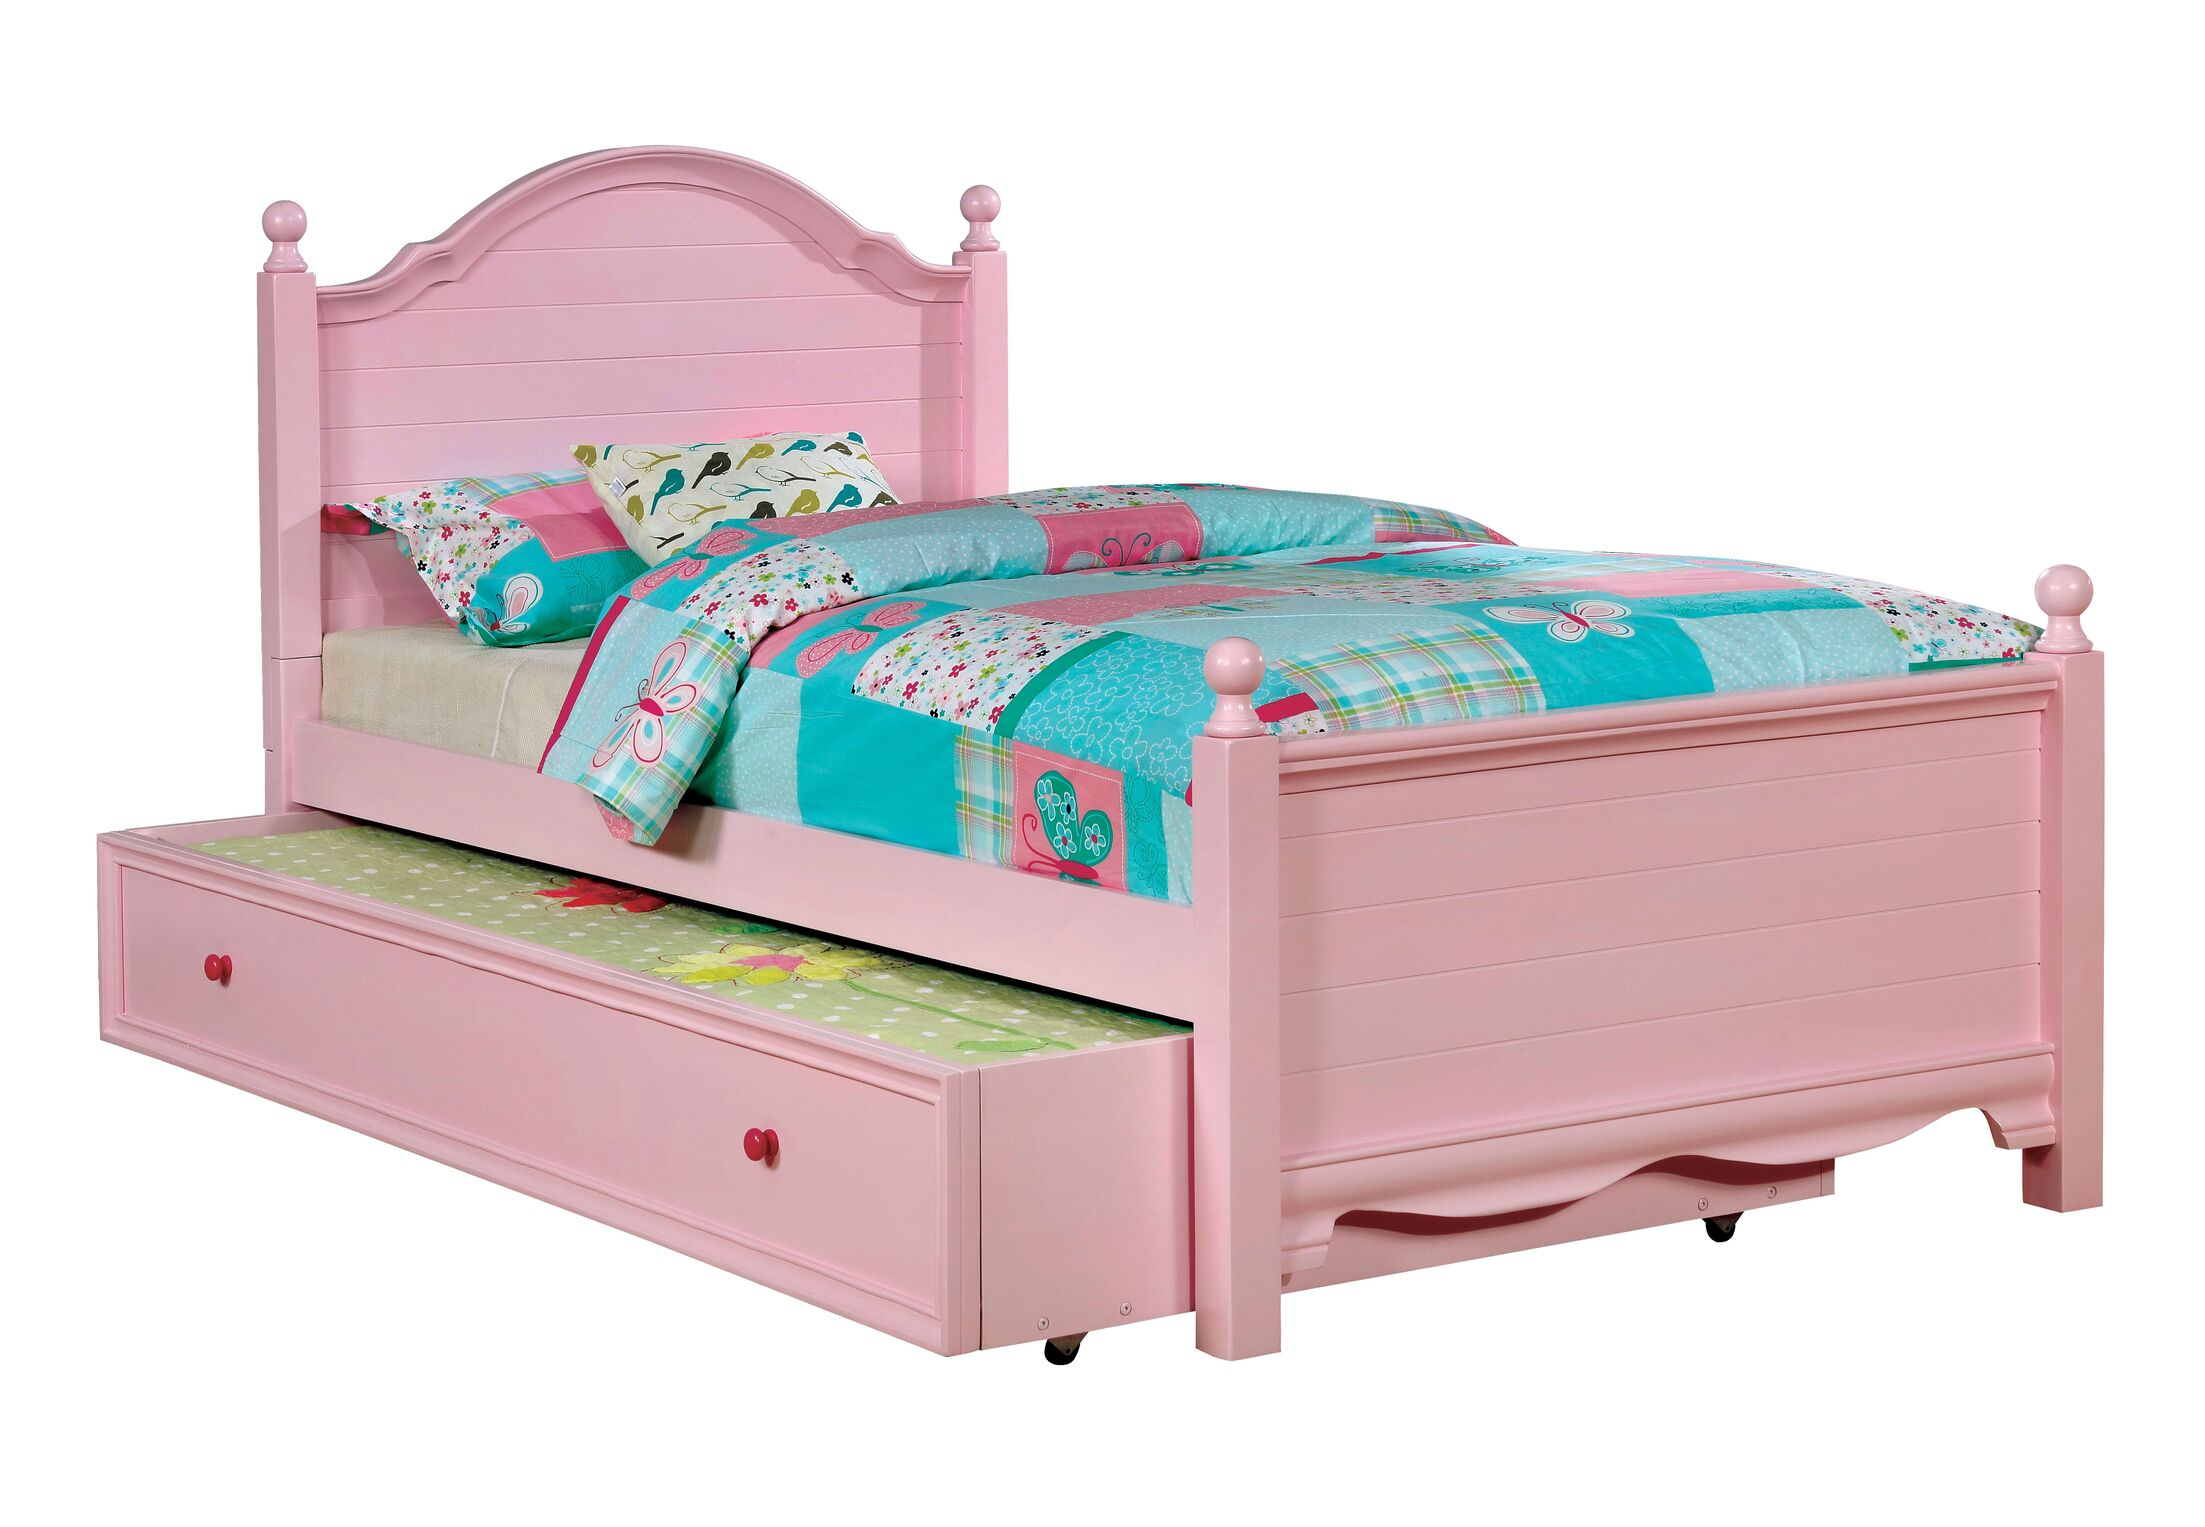 Contemporary Trundle Unit and Side Rail Bed Frame Color: Pink, Size: Twin